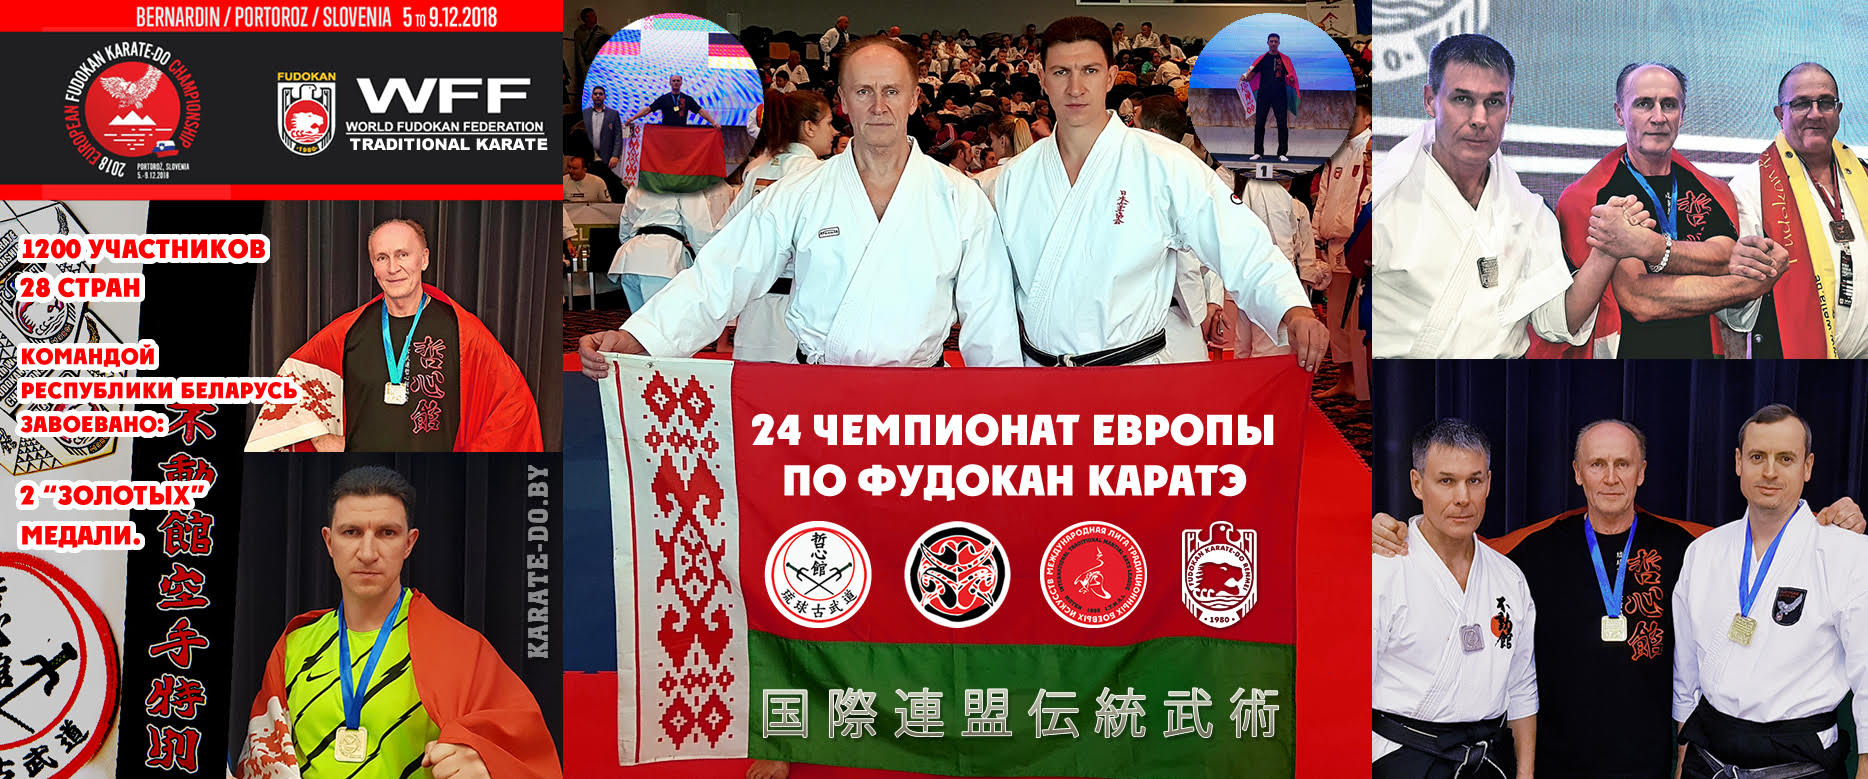 The 24th Championship and European Championship op FUDOKAN KARATE-DO of 2018 (Portorozh, Slovenia)